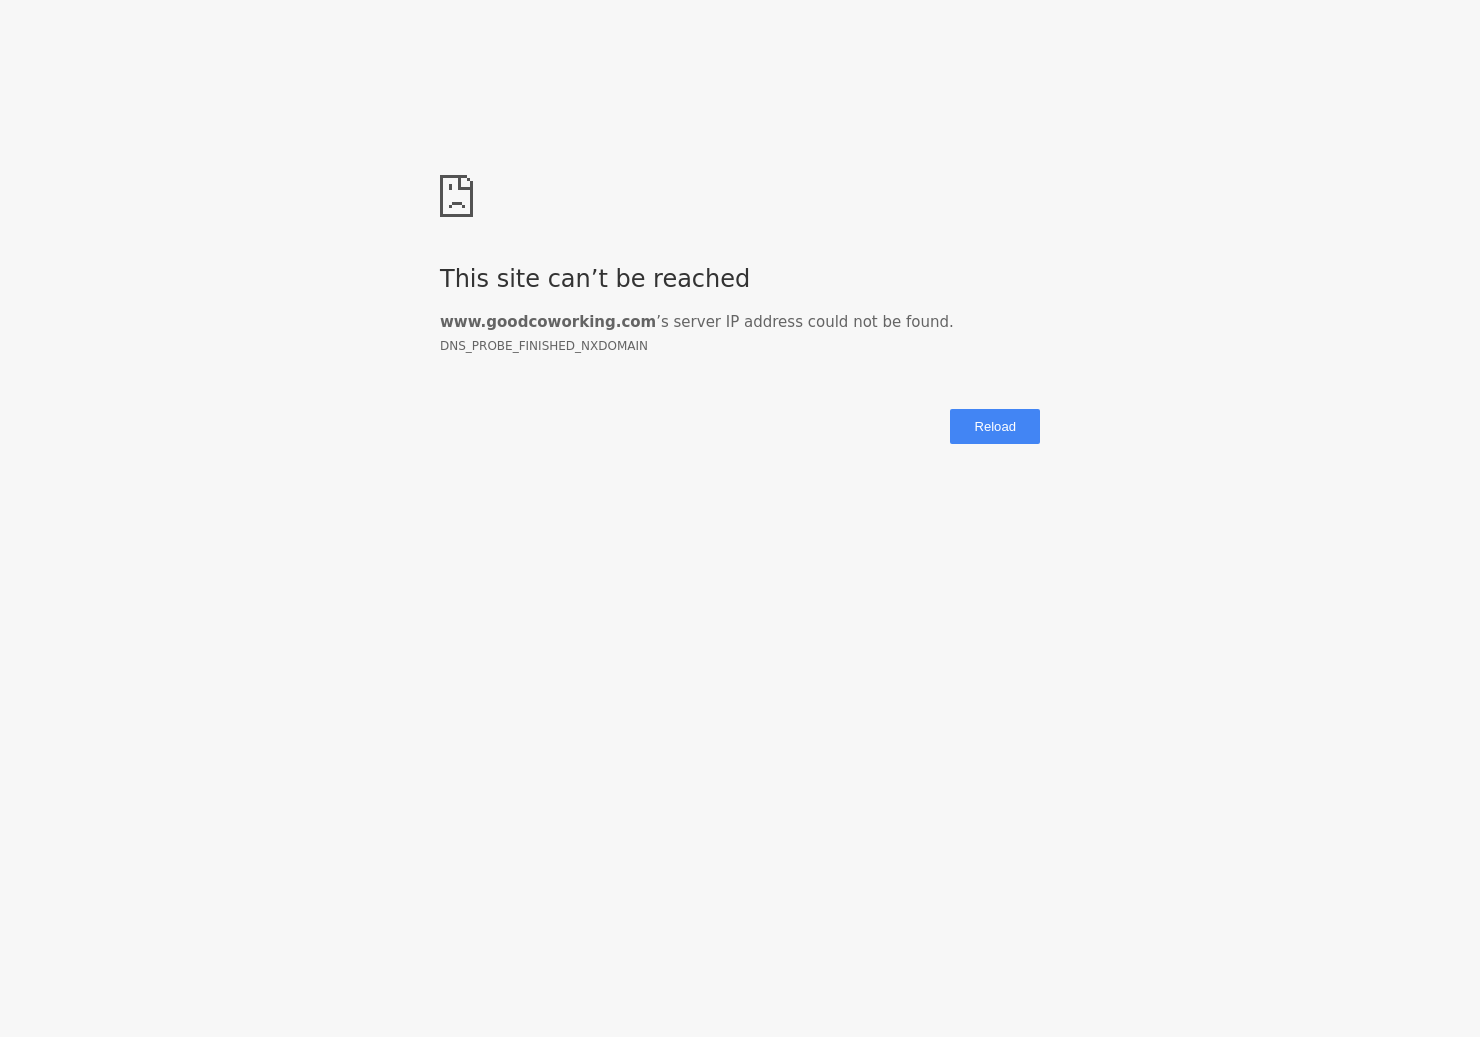 https://www.goodcoworking.com/